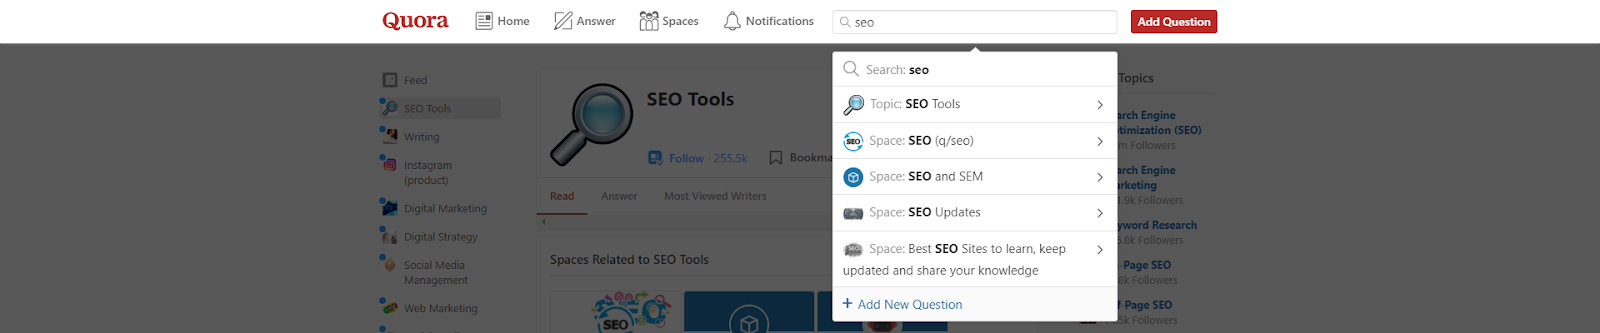 how to use quora for keyword research